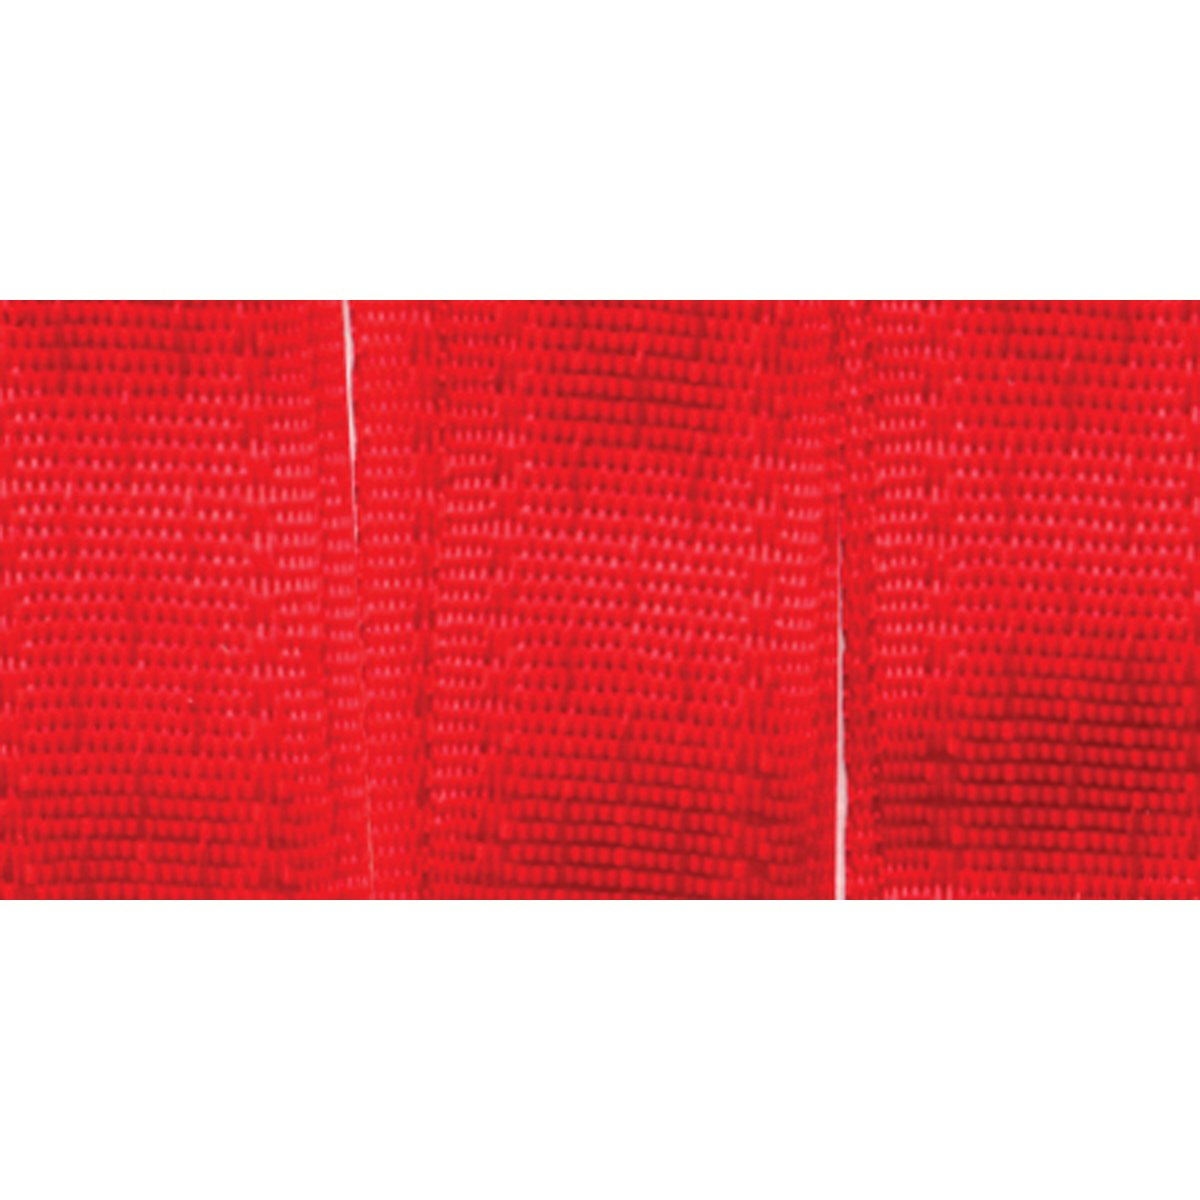 Wrights 117-608-076 Polyester Iron-On Hem Tape, Scarlet, 3-Yard Notions - In Network